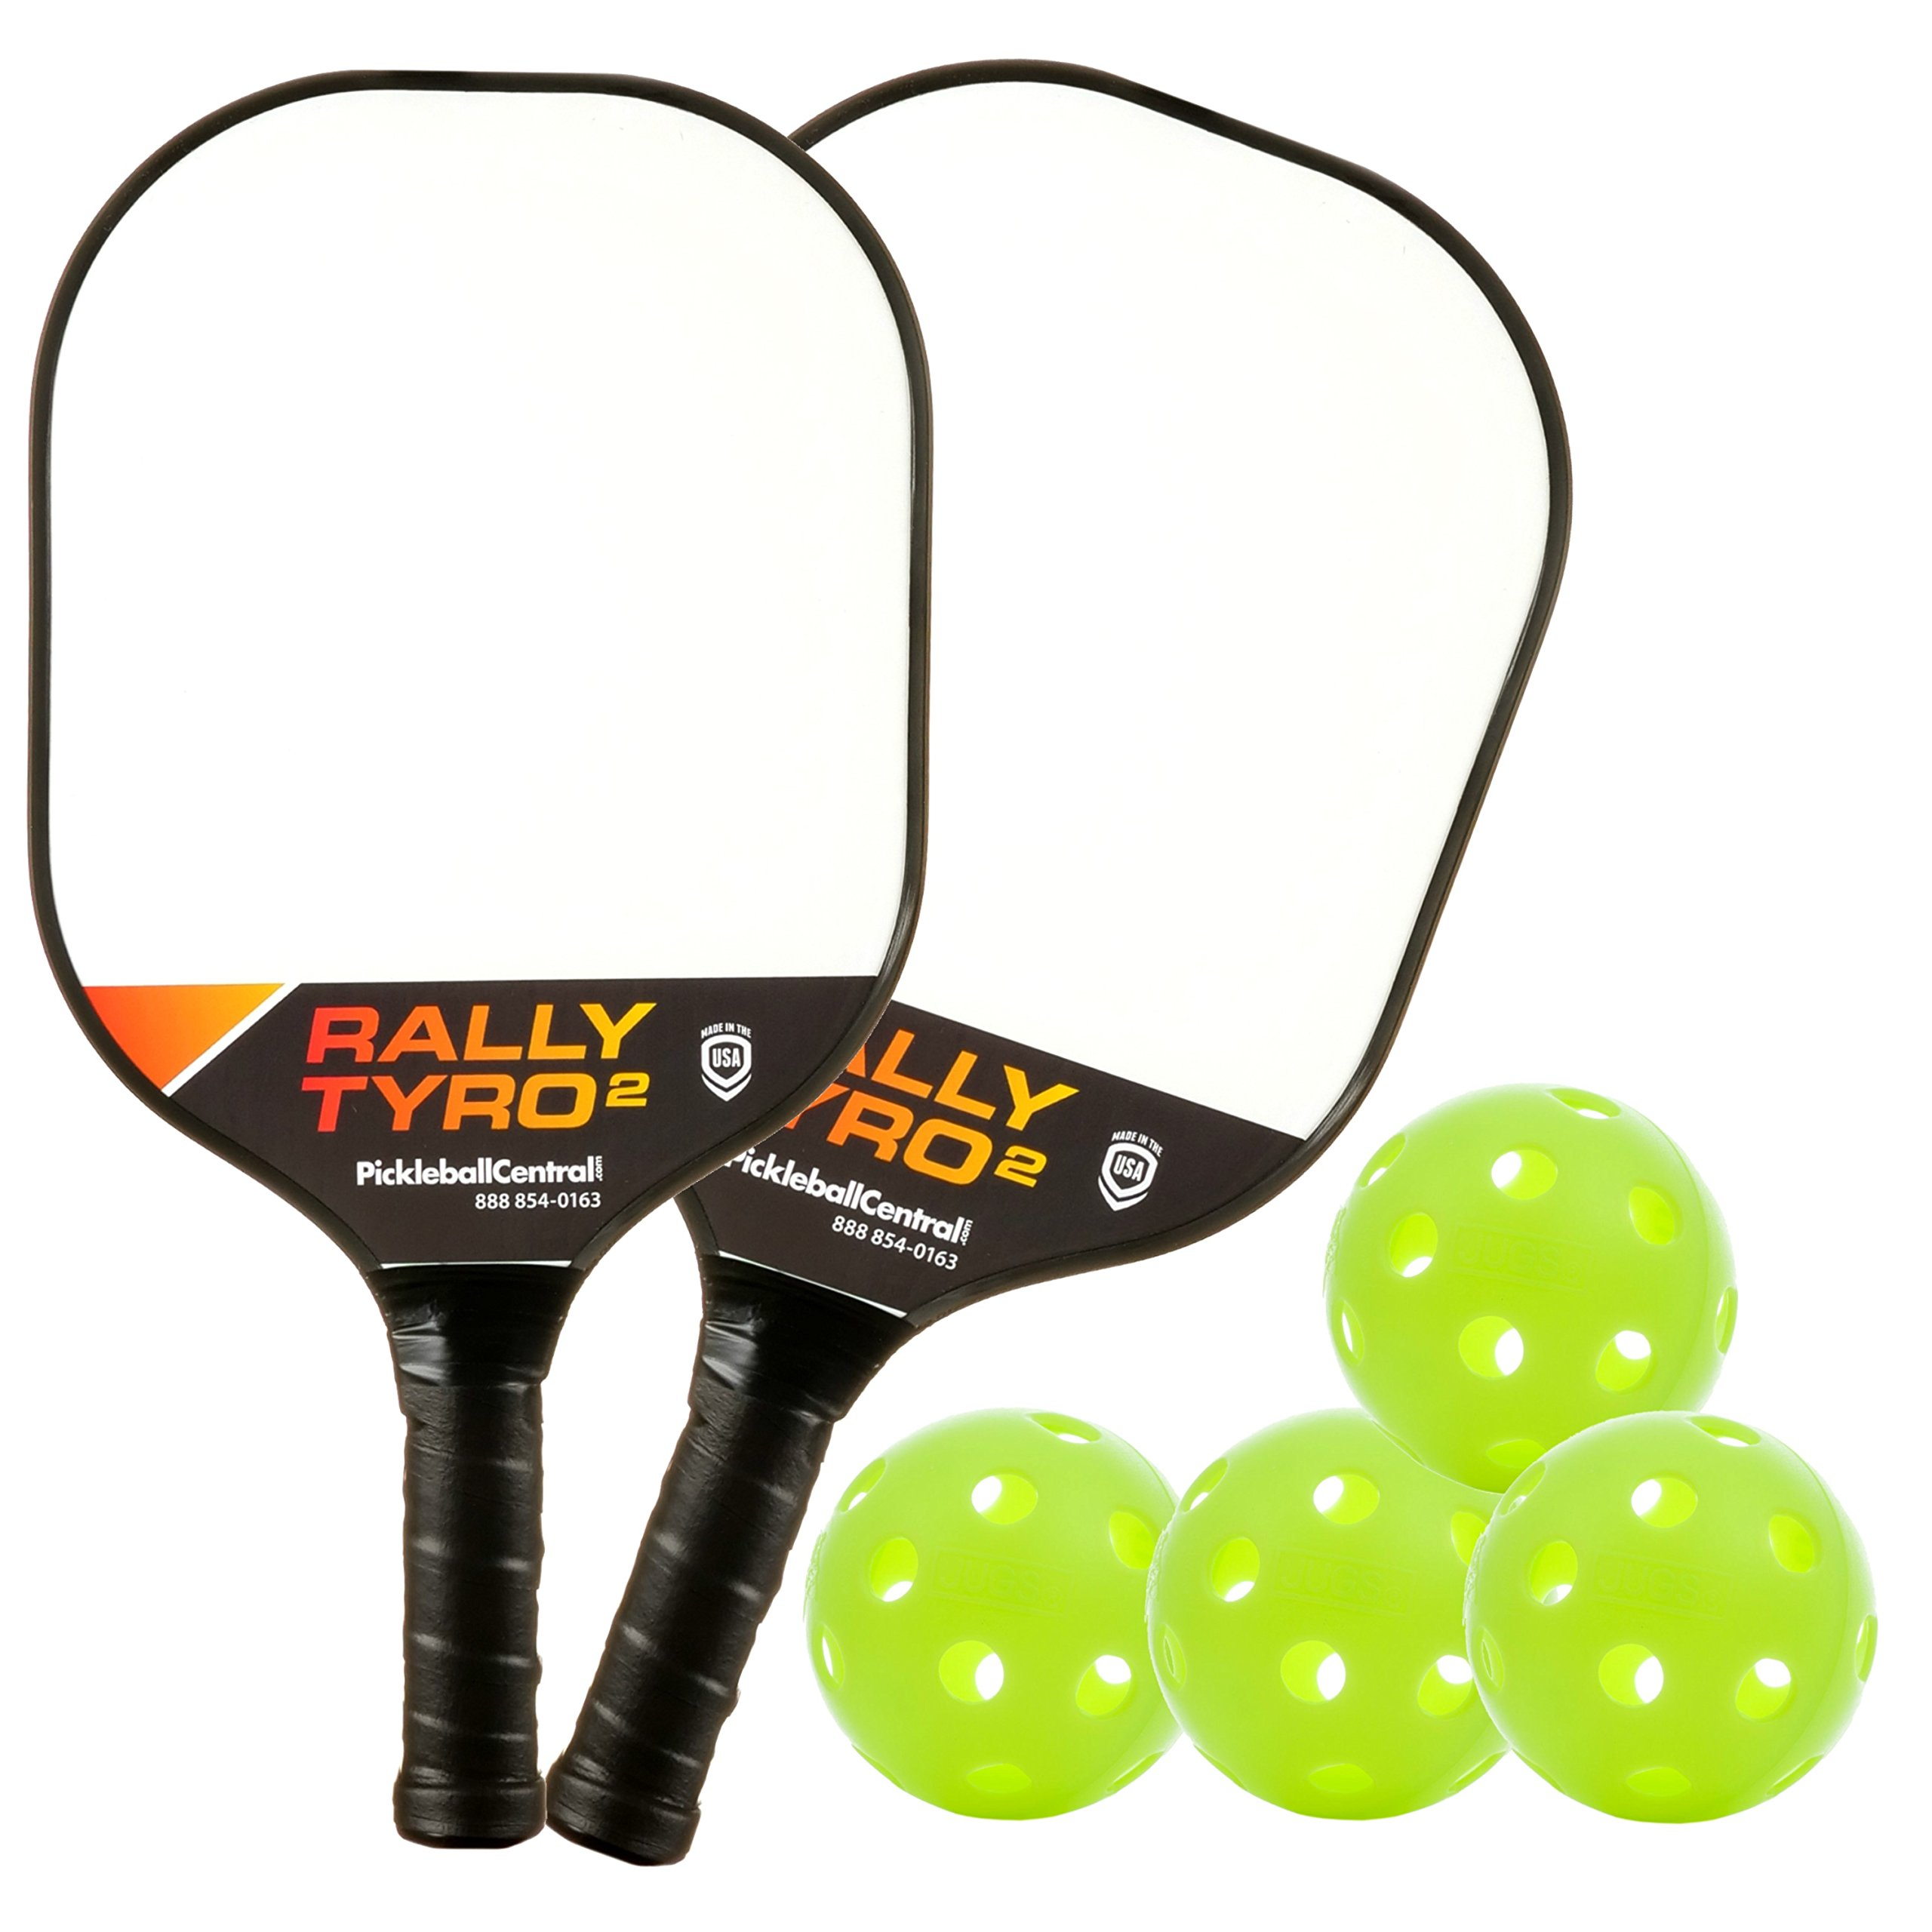 PickleballCentral Rally Tyro 2 Pickleball 2 Player Paddle and Ball Set Two (2) Rackets and Four (4) Balls | Advanced Composite Polypropylene Honeycomb Core and Fiberglass Face || Great Gift